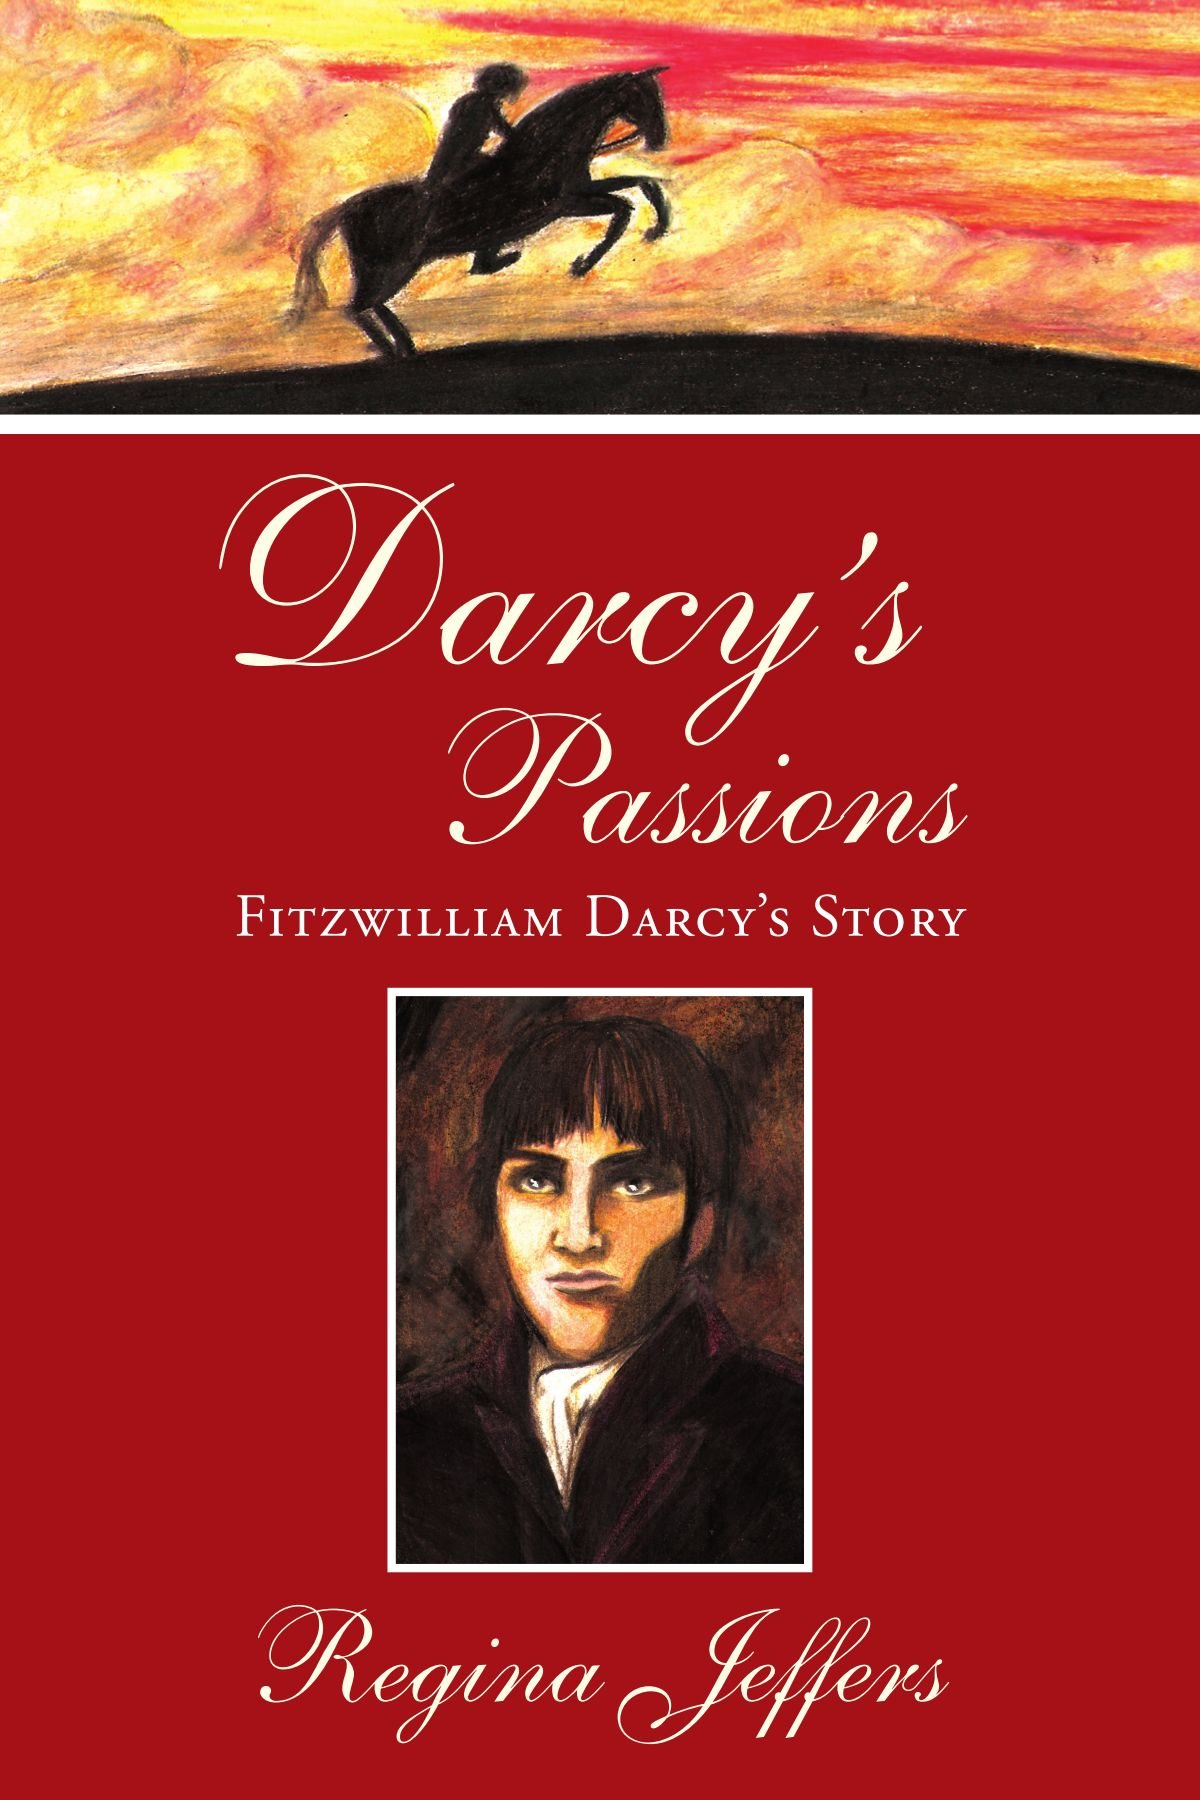 Amazon darcys passions fitzwilliam darcys story amazon darcys passions fitzwilliam darcys story 9781425781286 regina jeffers books fandeluxe Gallery